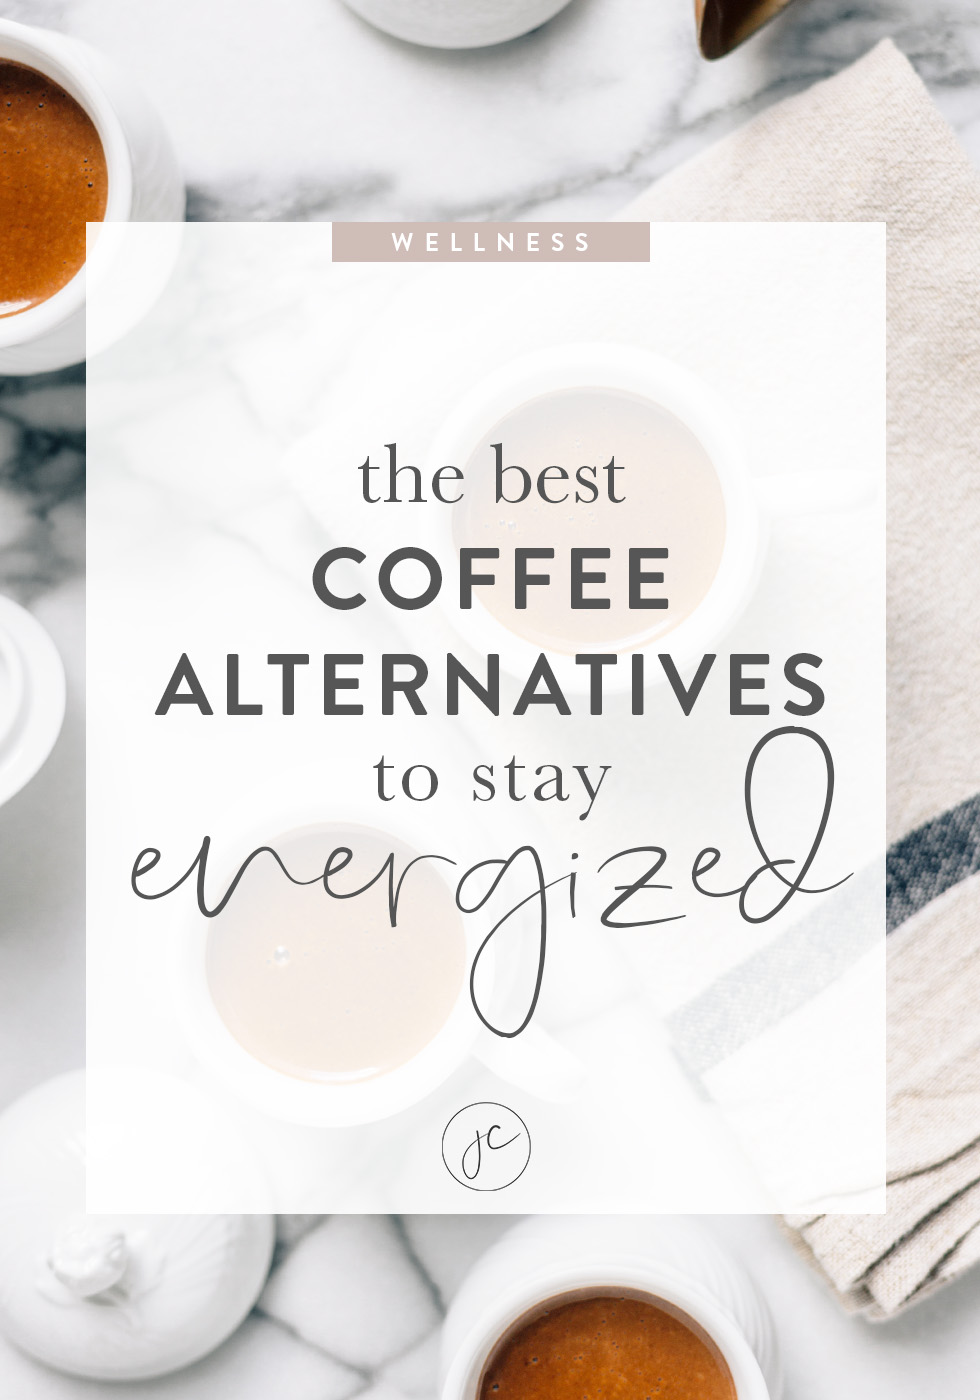 The Best Coffee Alternatives to Stay Energized